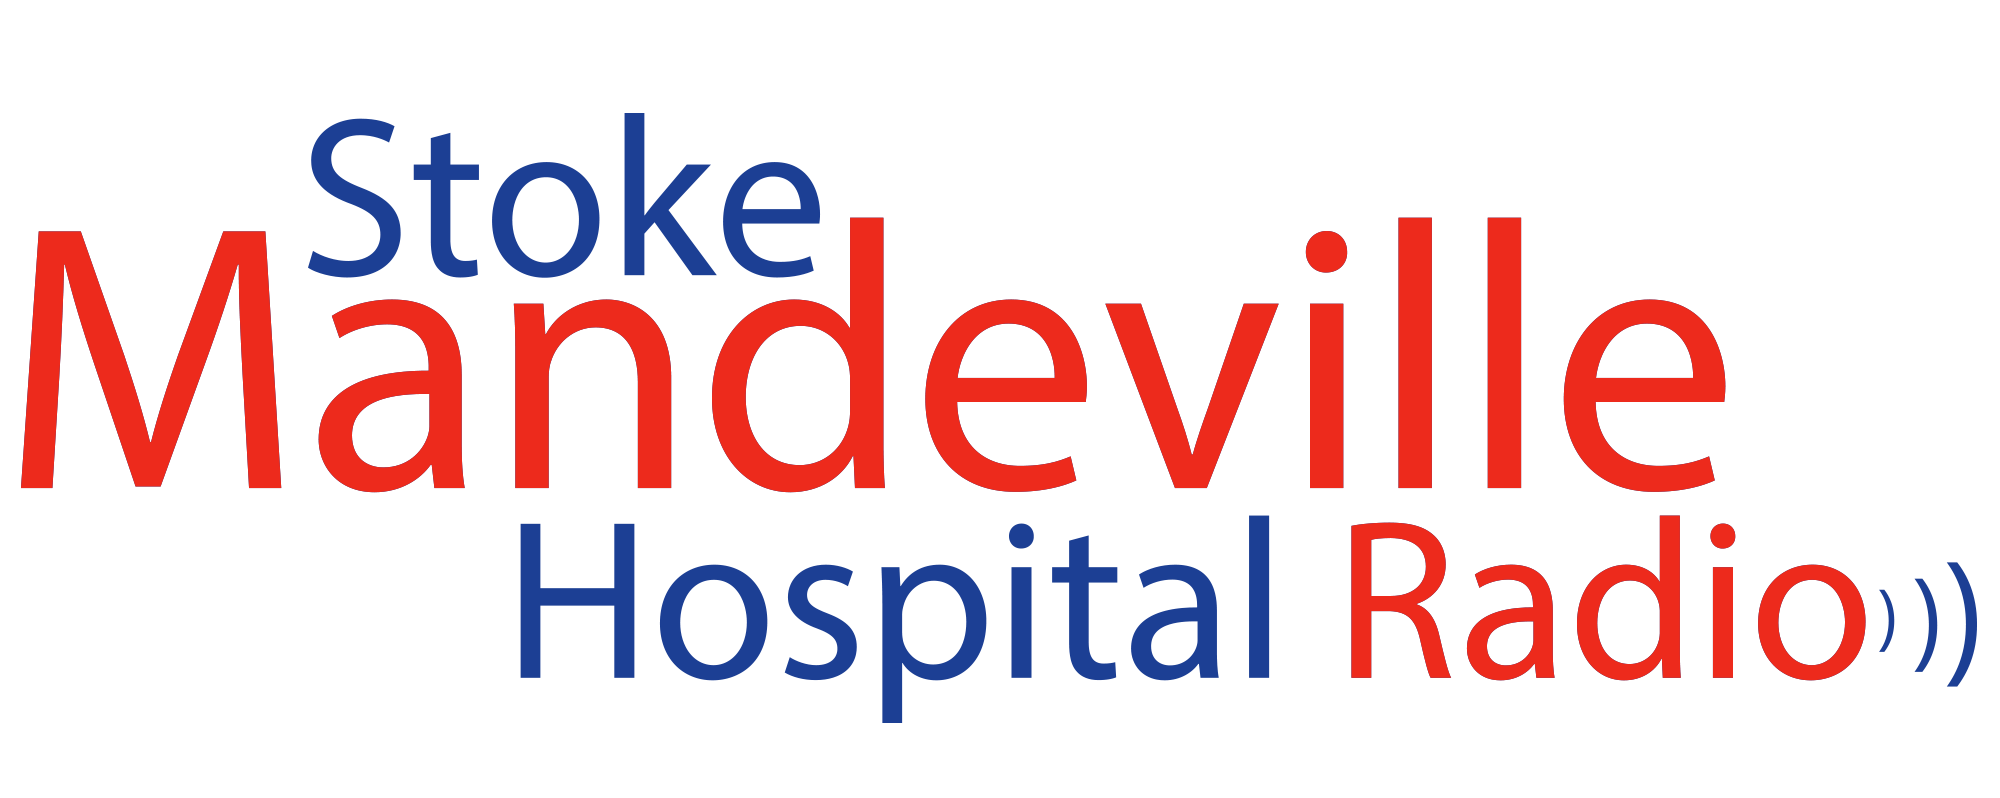 Stoke Mandeville Hospital Radio